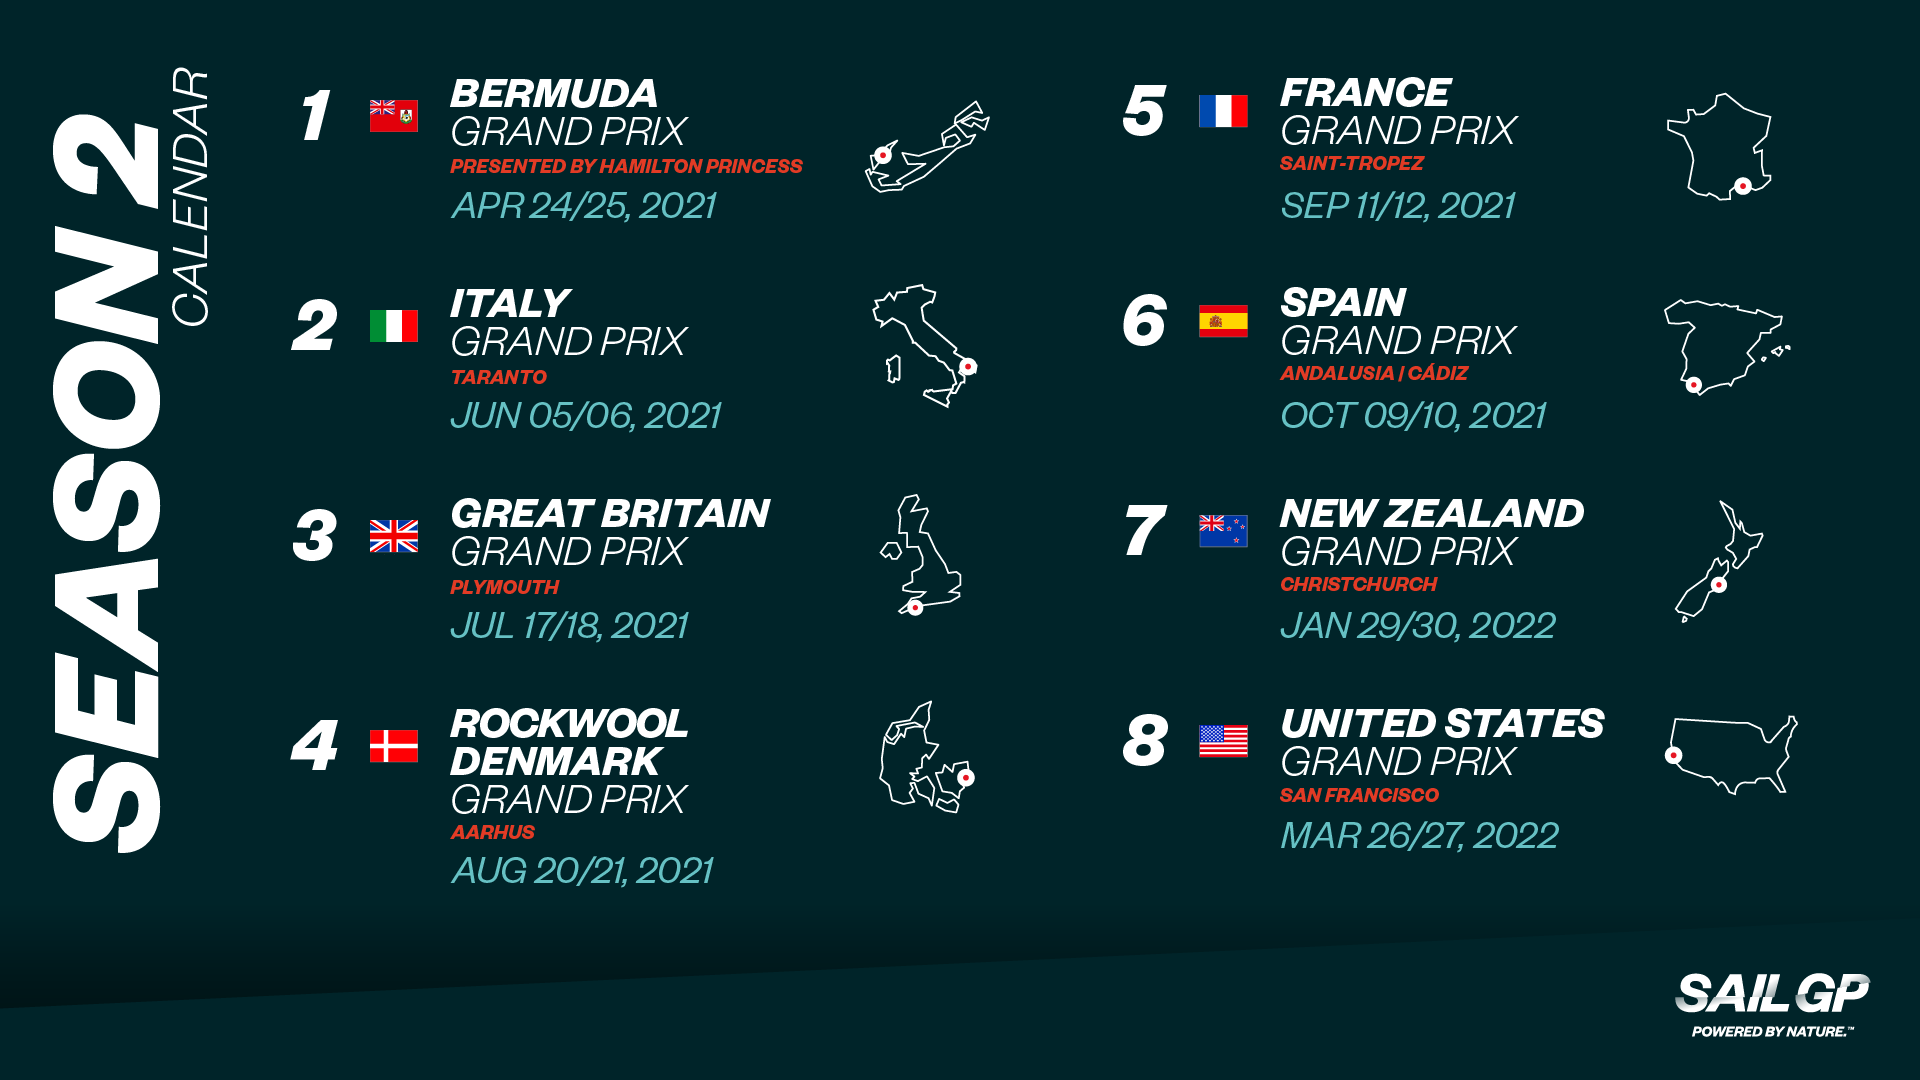 SailGP's Season 2 to feature eight global events from April 2021 to March 2022